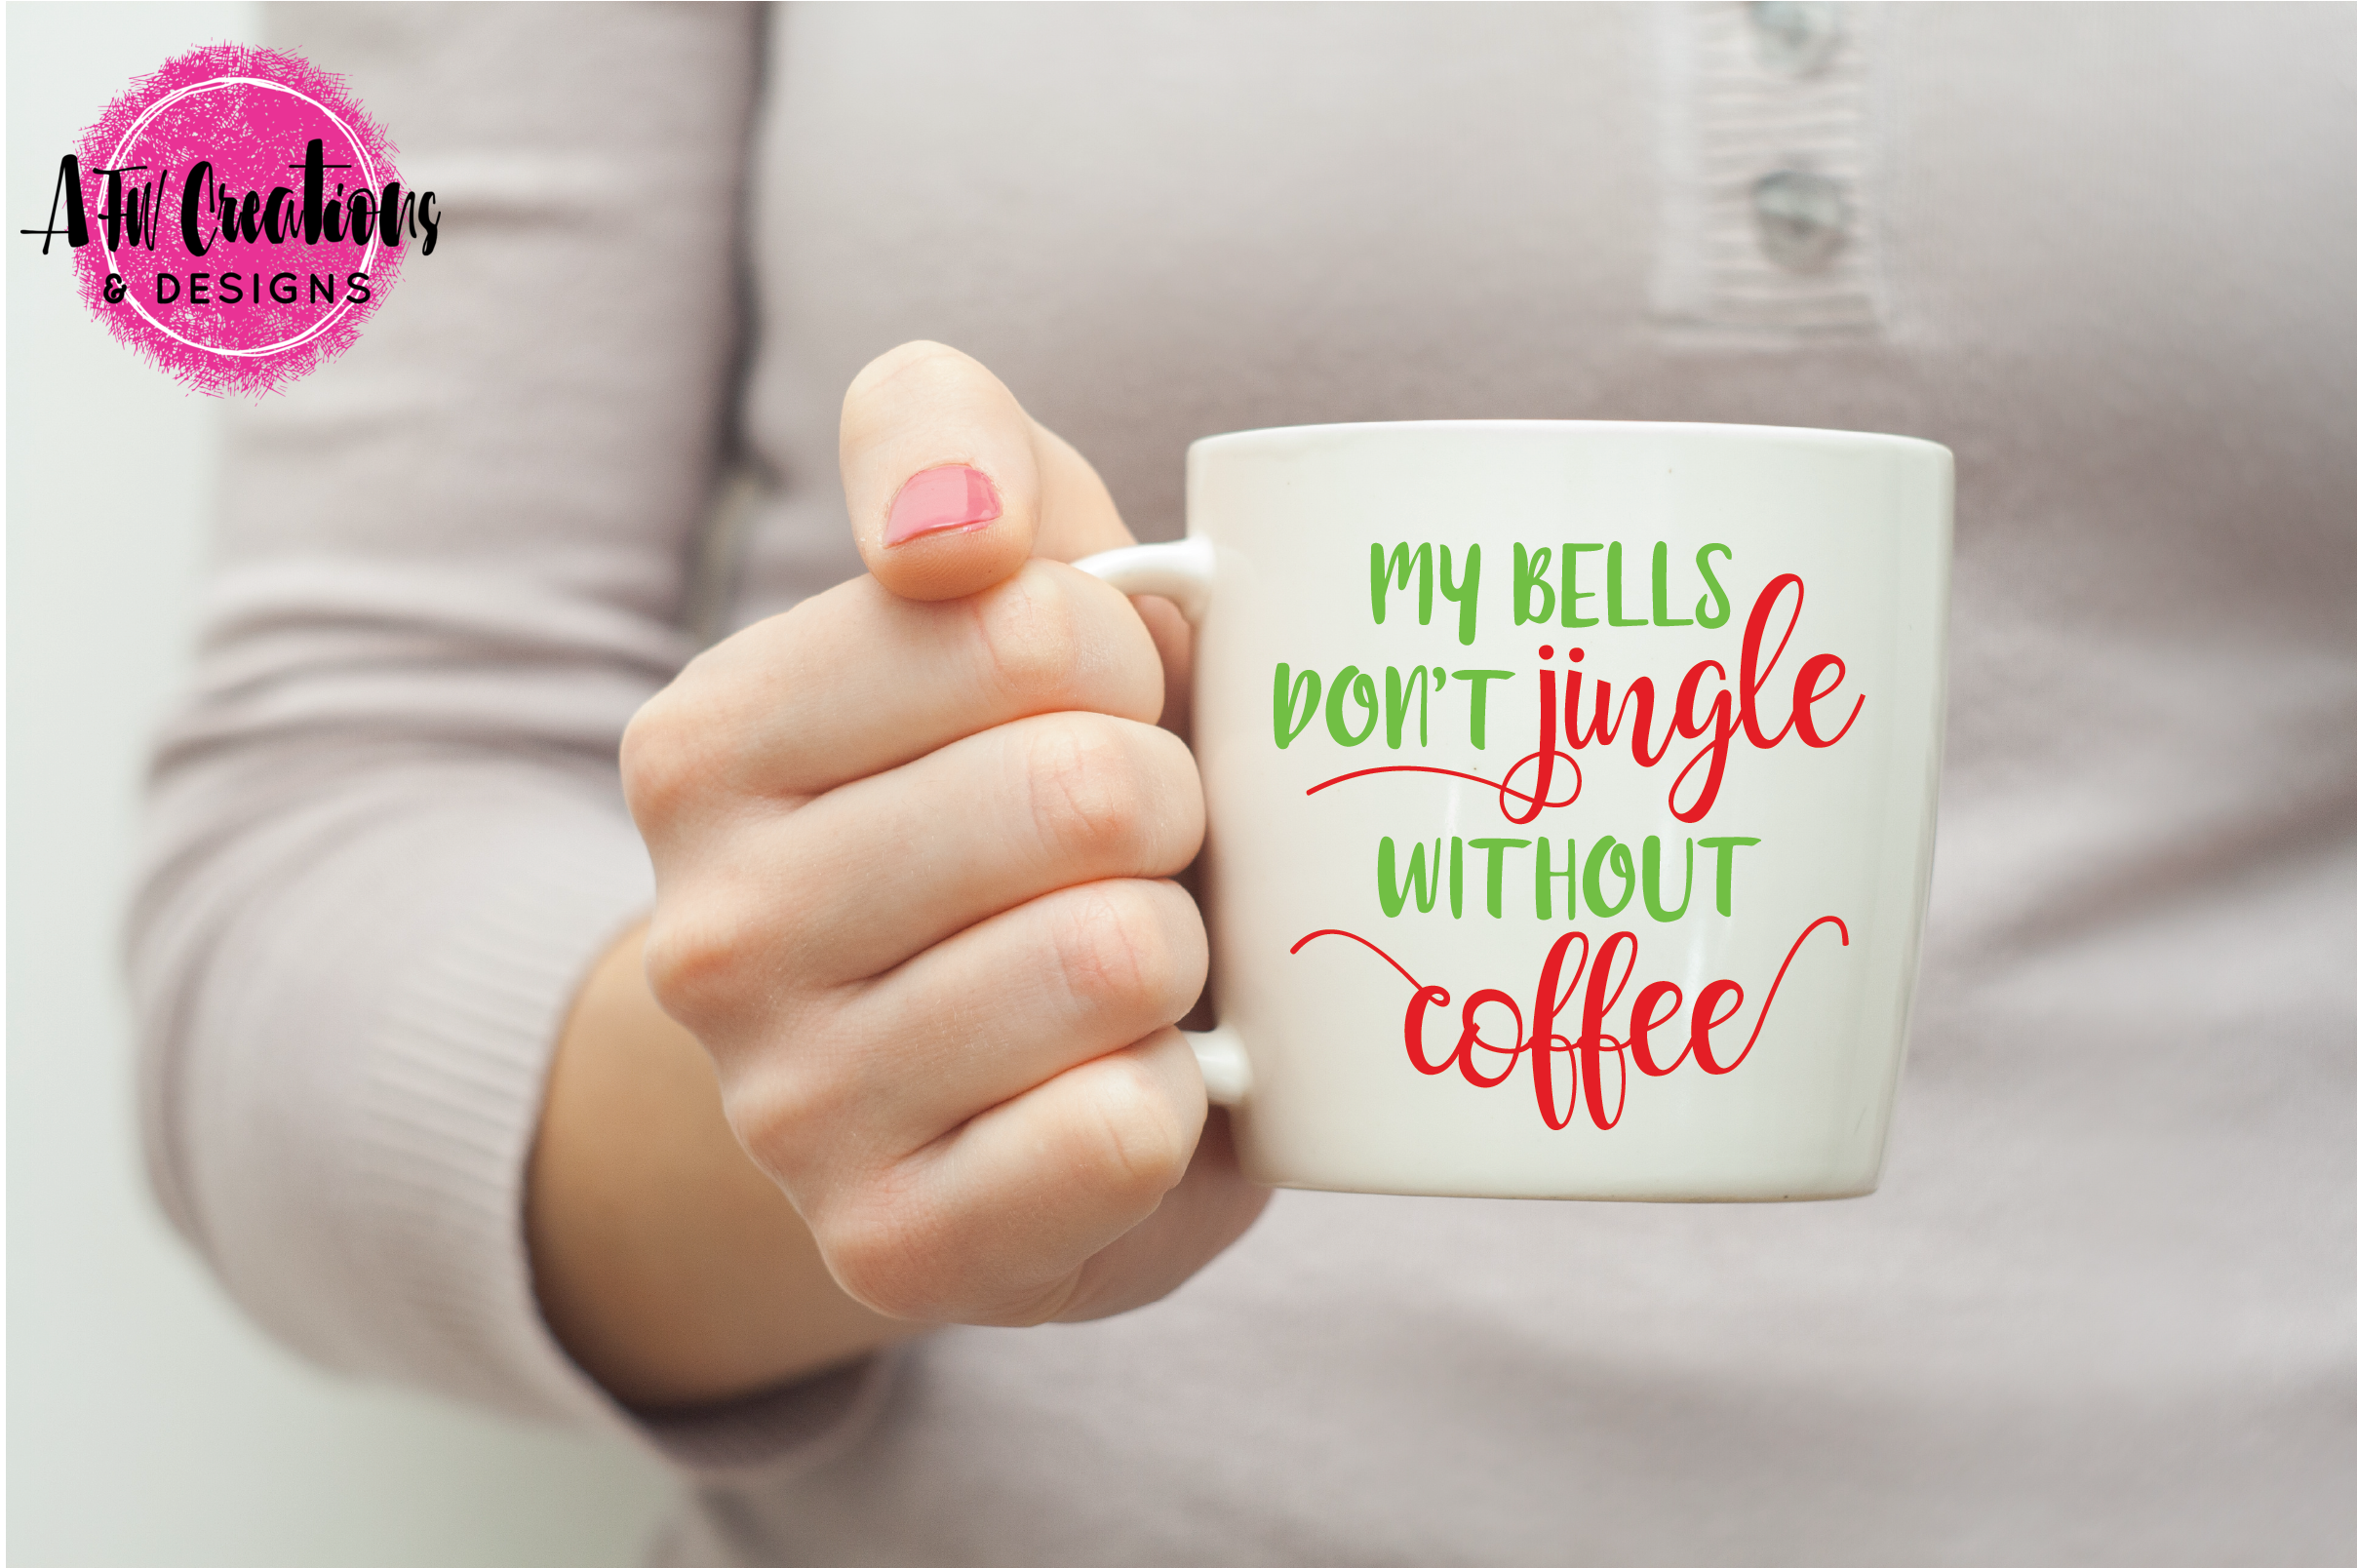 My Bells Don't Jingle Without Coffee - SVG, DXF, EPS Cut File example image 2